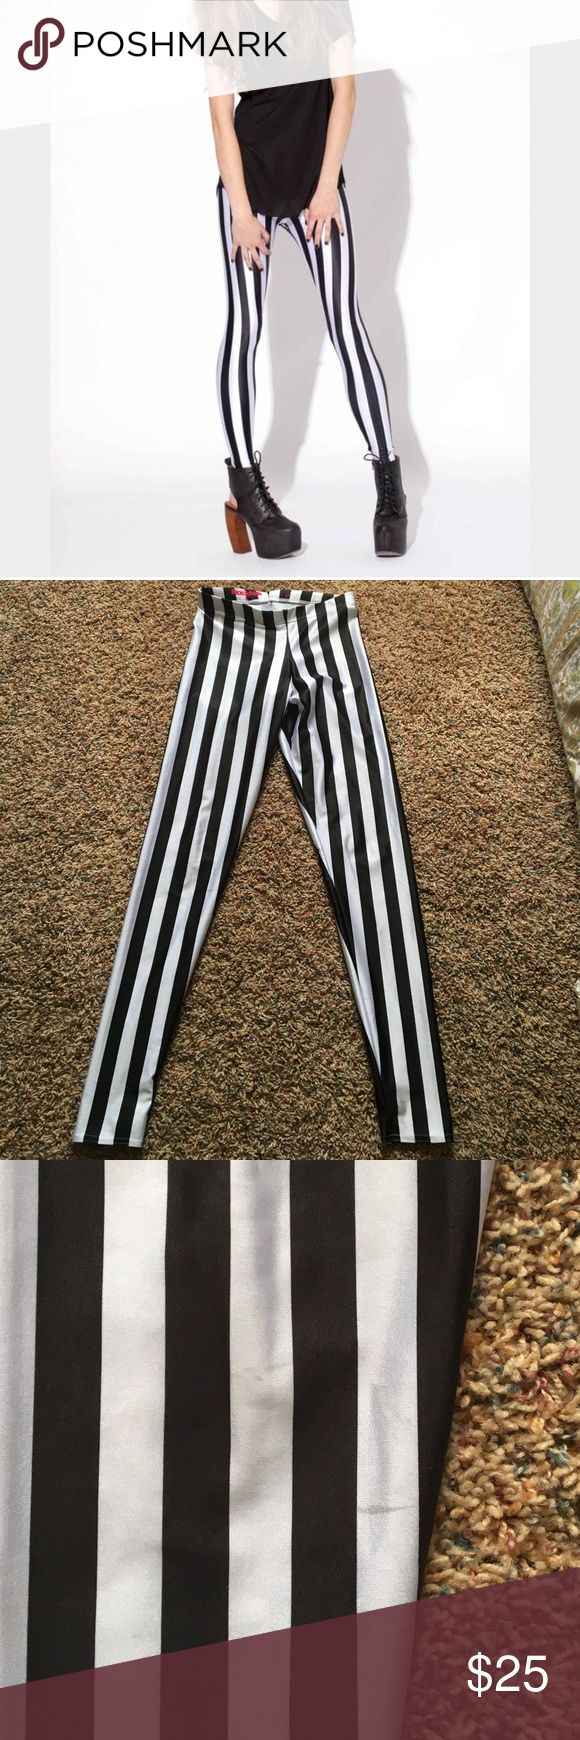 Blackmilk Beetlejuice Leggings Blackmilk beetlejuice leggings, size medium. Previously loved with some small spots to prove it, shown in pictures. A few little spots of the knees and a little one on the butt. Hardly noticeable in person! Price reflects flaws. No rips or tears! Blackmilk Pants Leggings